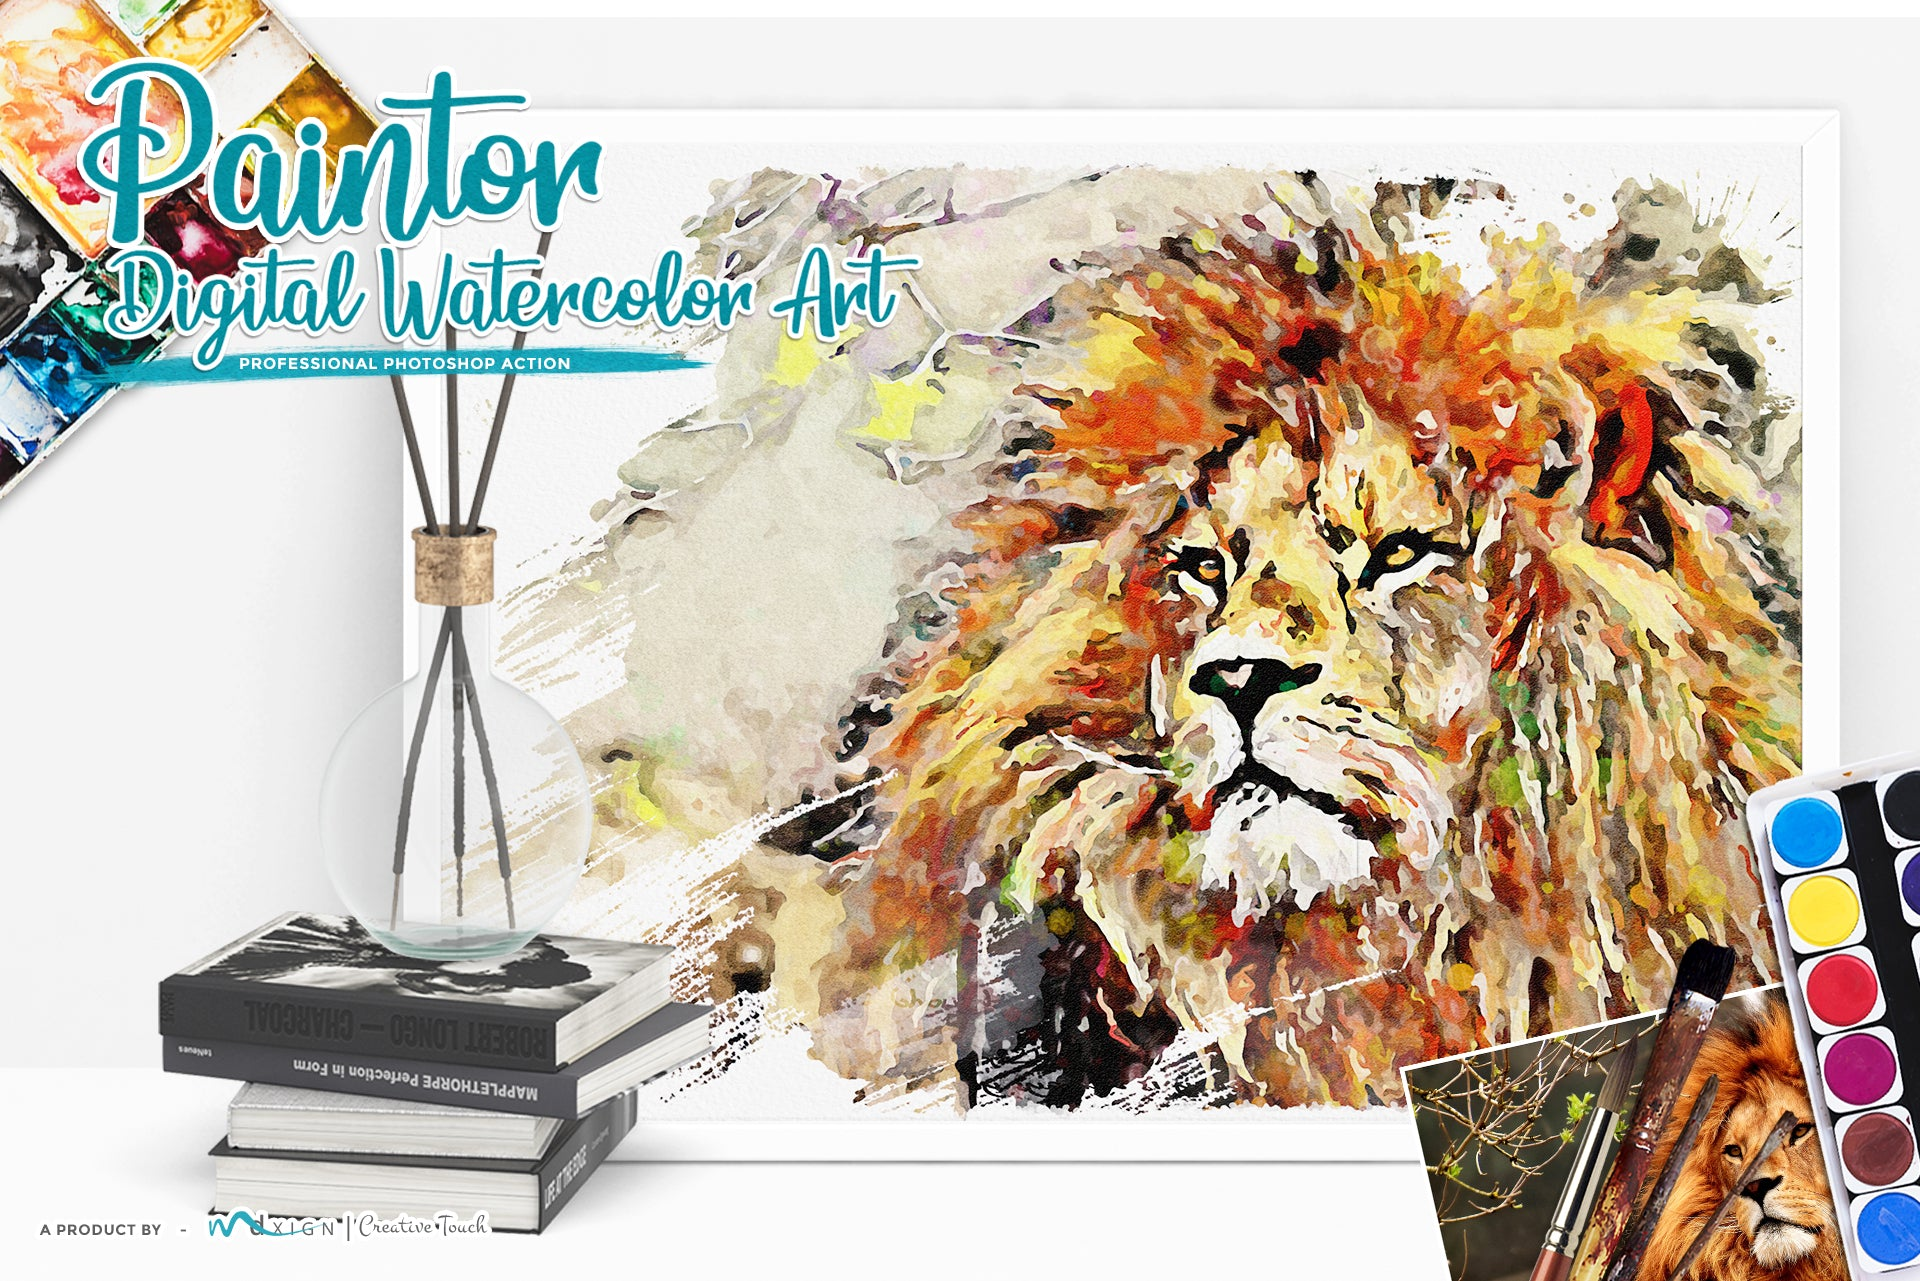 19-In-1 Modern Art Photoshop Actions Bundle-Add-Ons-Artixty